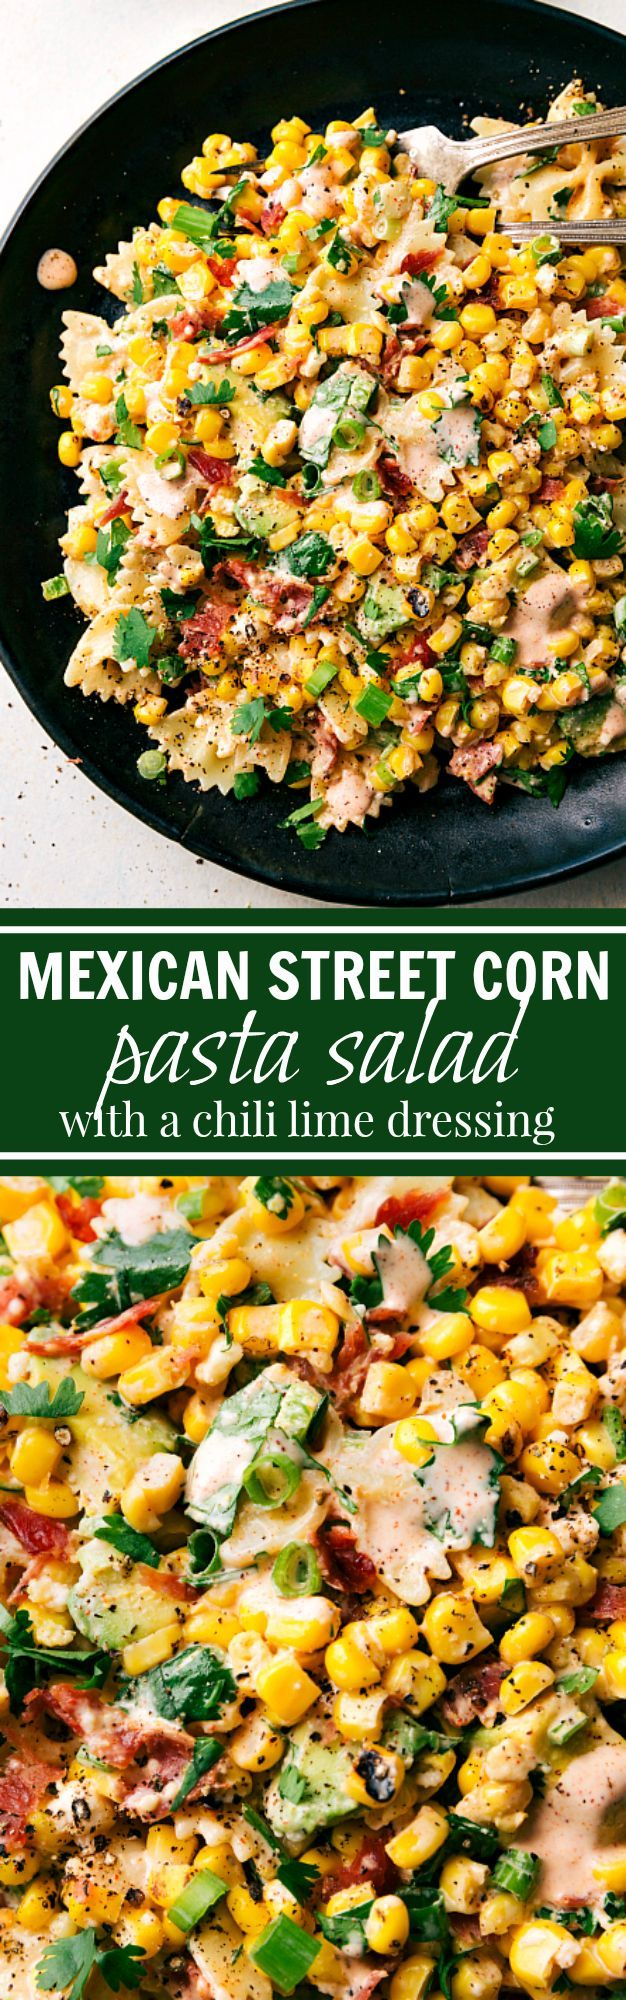 A delicious MEXICAN STREET CORN Pasta salad with tons of veggies, bacon, and a simple creamy CHILI LIME dressing.